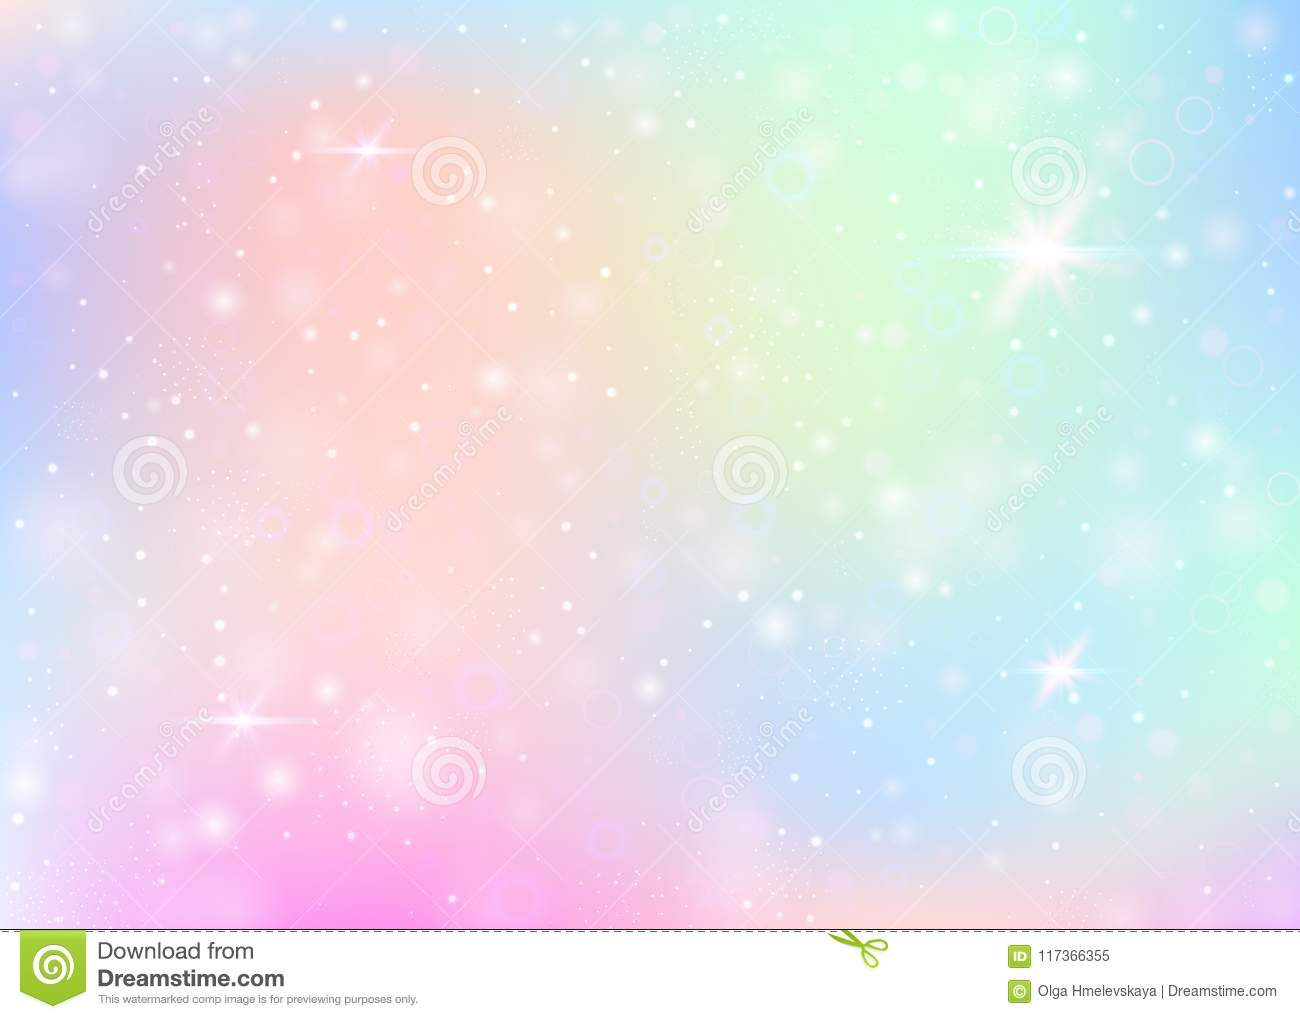 Cute Pink Wallpaper 1980 Unicorn Background With Rainbow Mesh Stock Vector